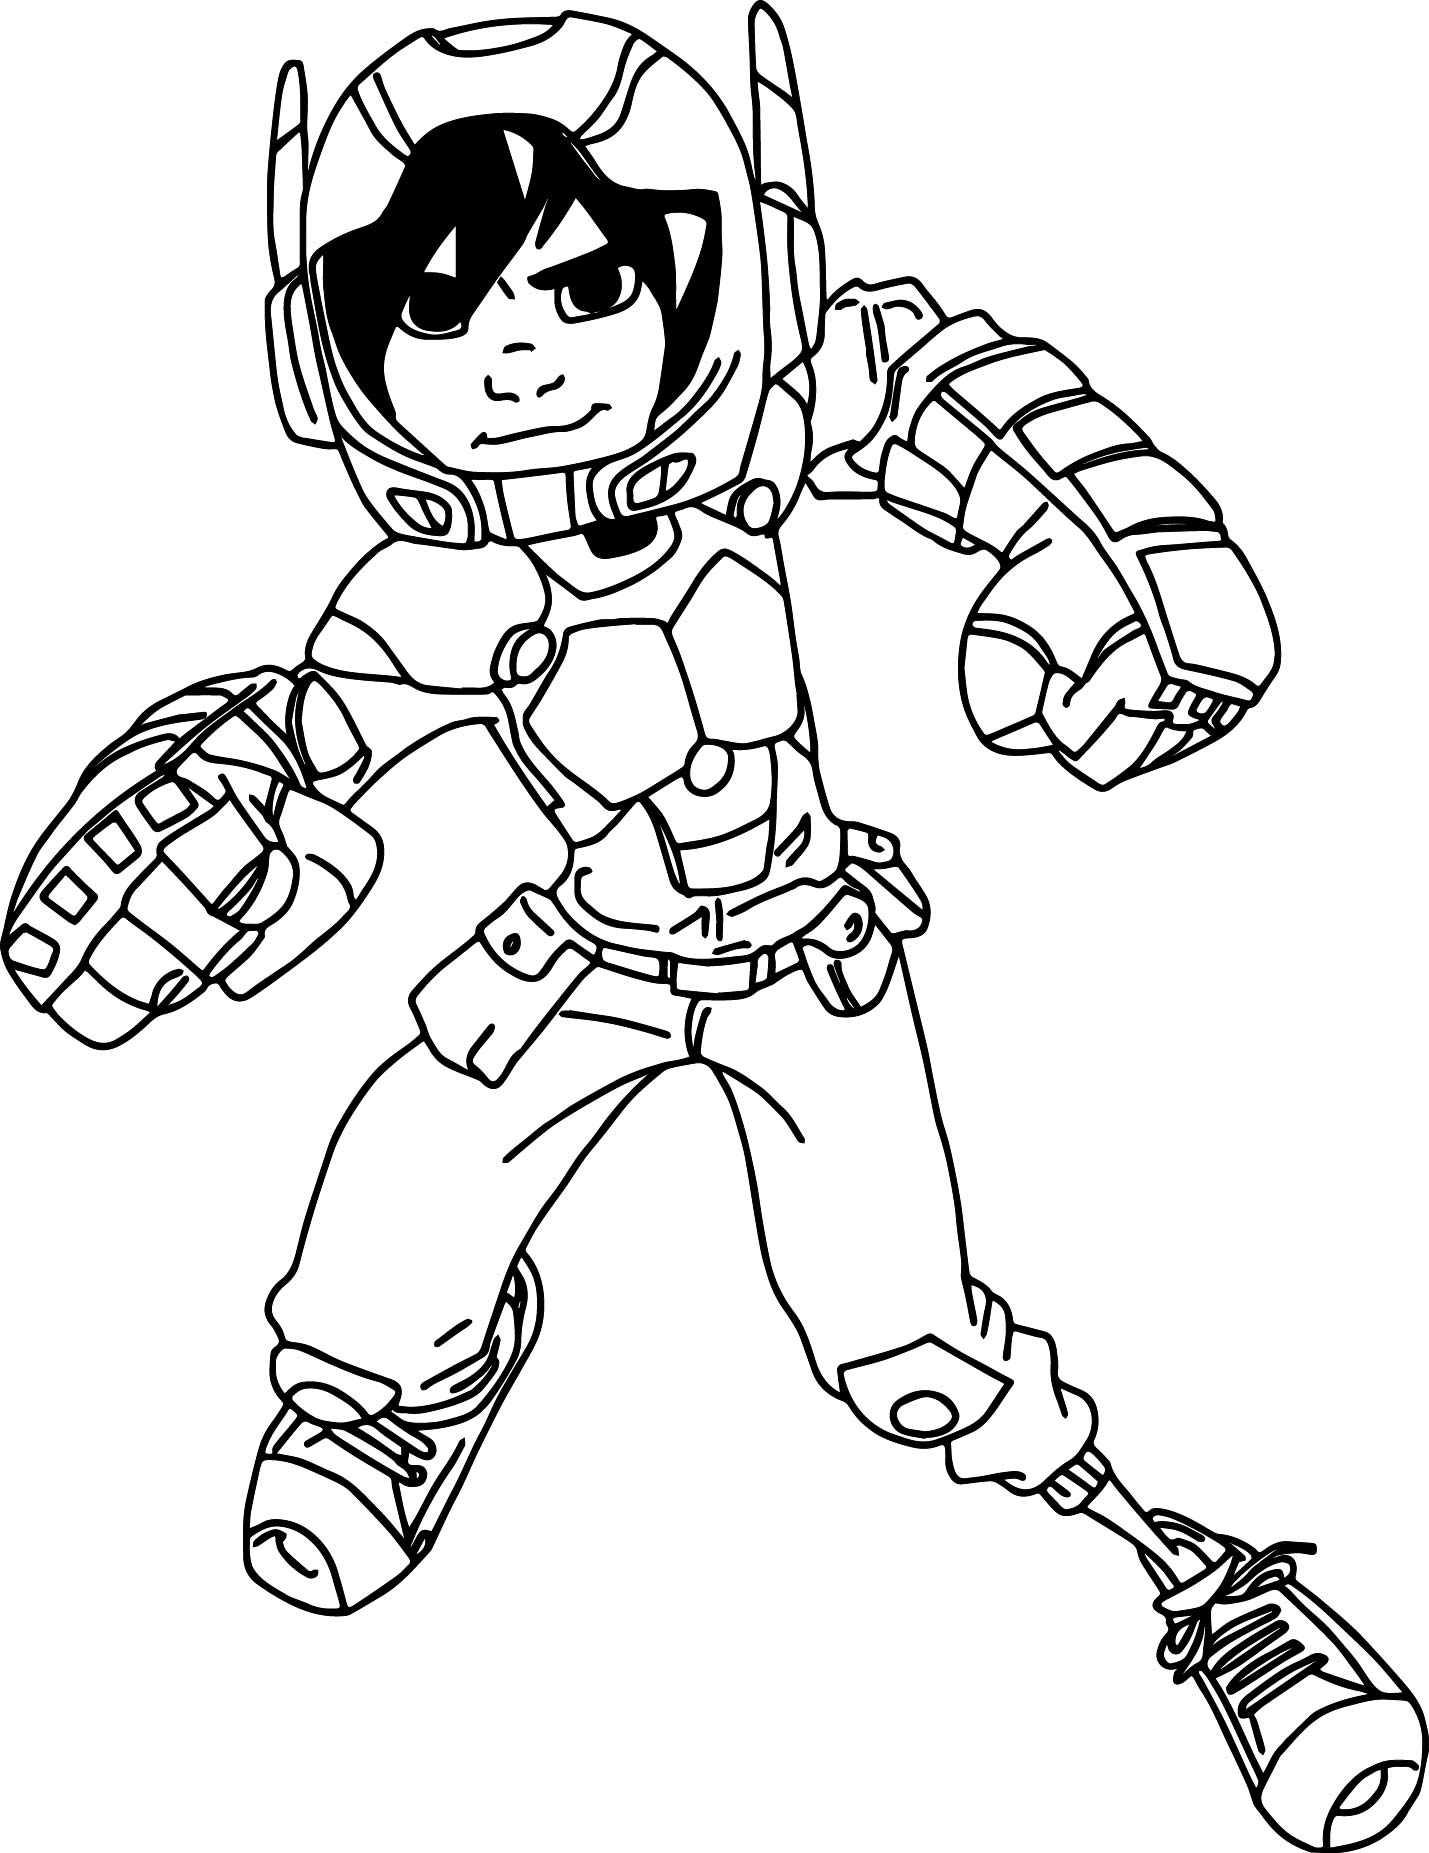 Big Hero 6 Characters Hiro Hamada Stay Coloring Page